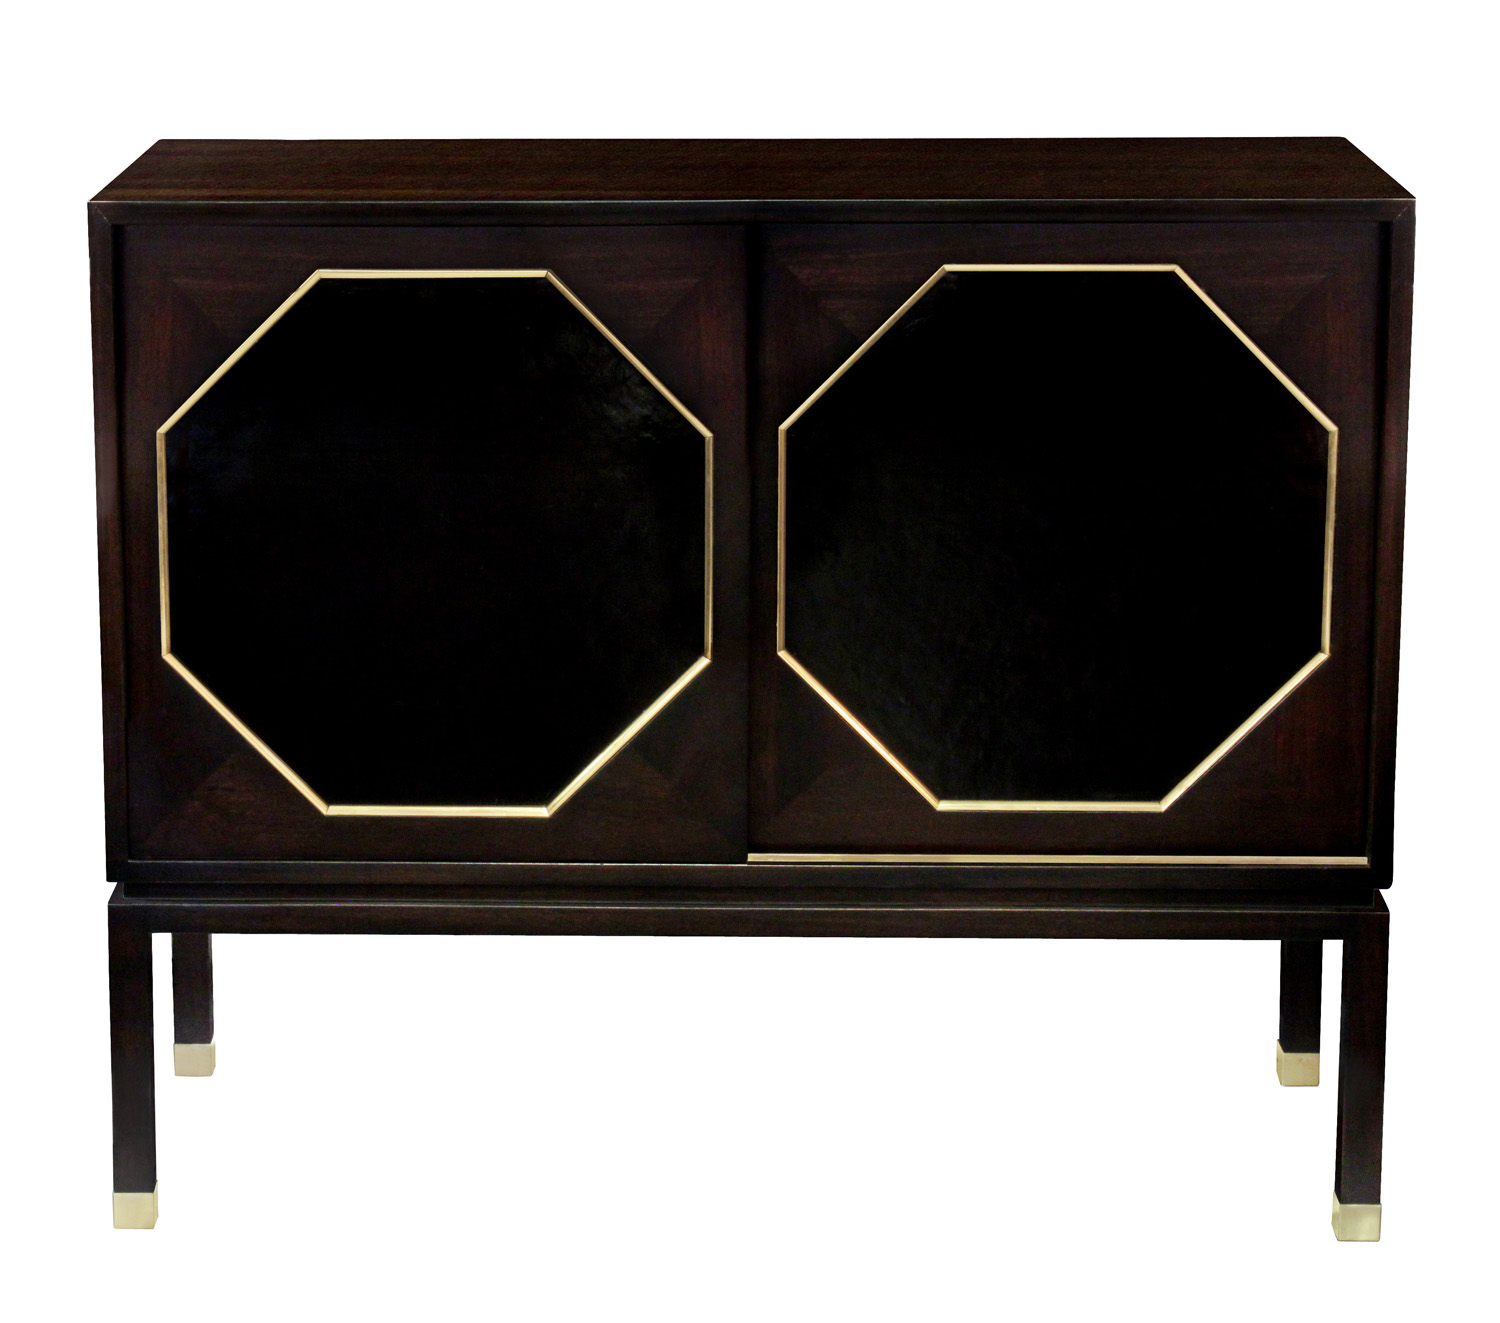 Probber 95 2dr w6sides leather cabinet42 detail3 hires.jpg